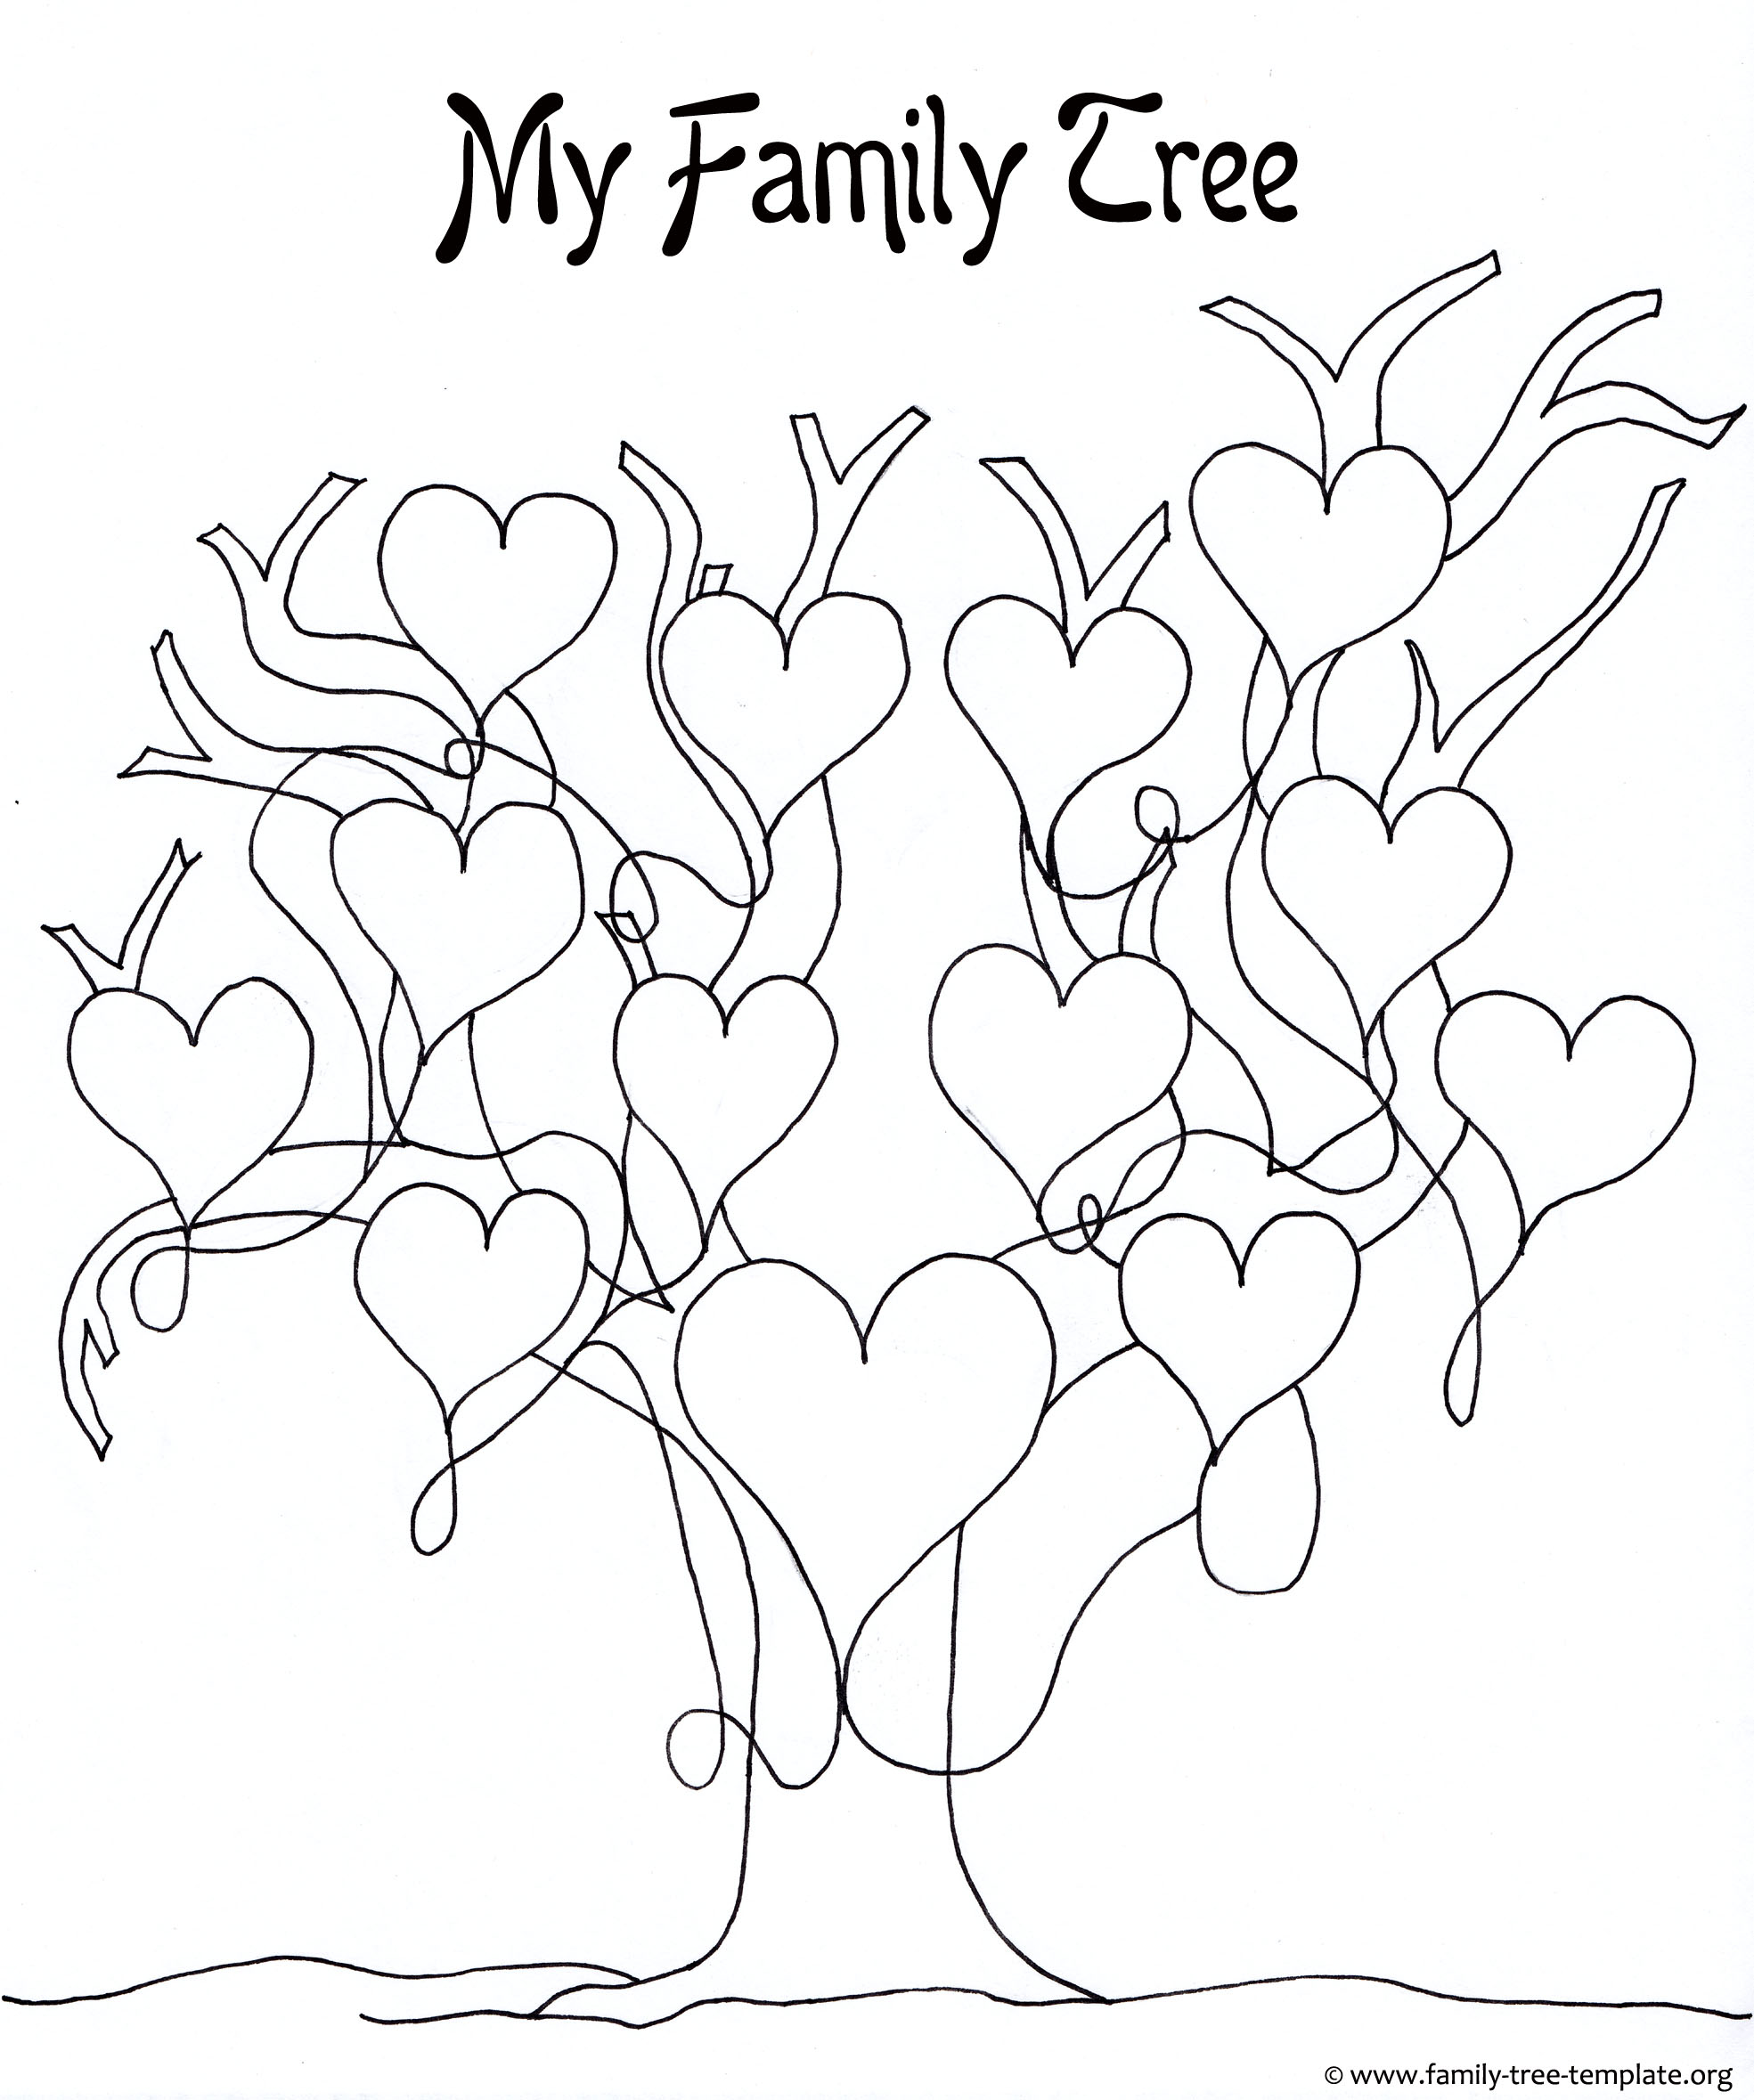 Family Tree Drawing Easy At Getdrawings Com Free For Personal Use